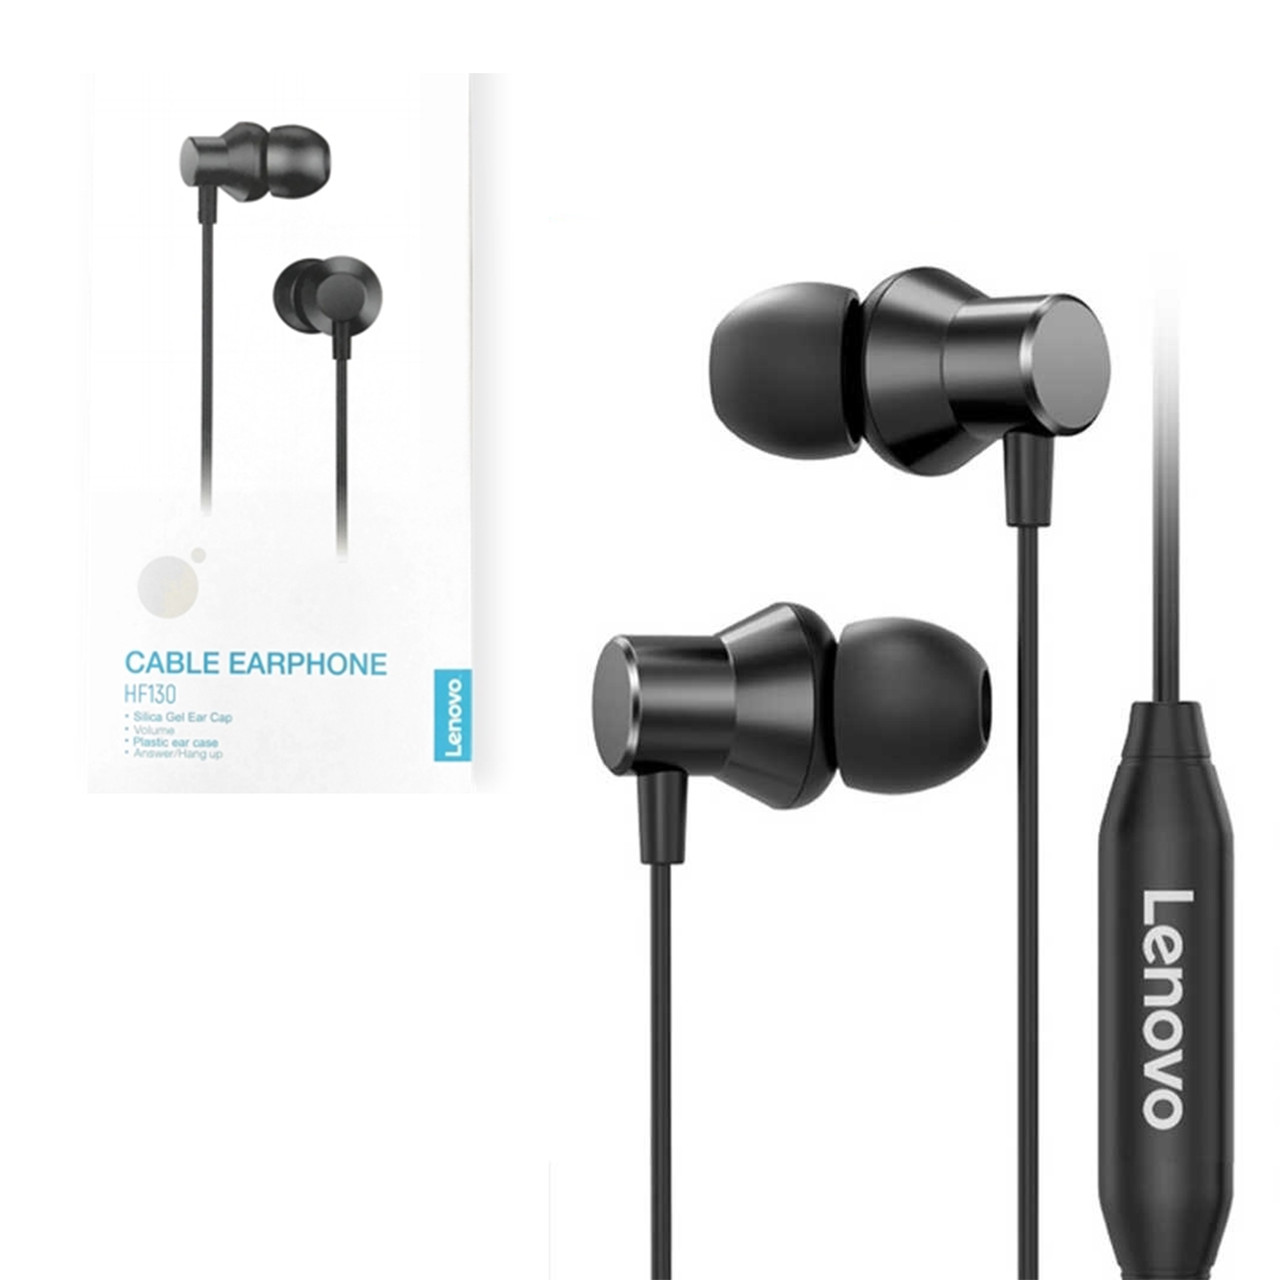 Гарнитура Lenovo HF130 Metal Earphone, Black